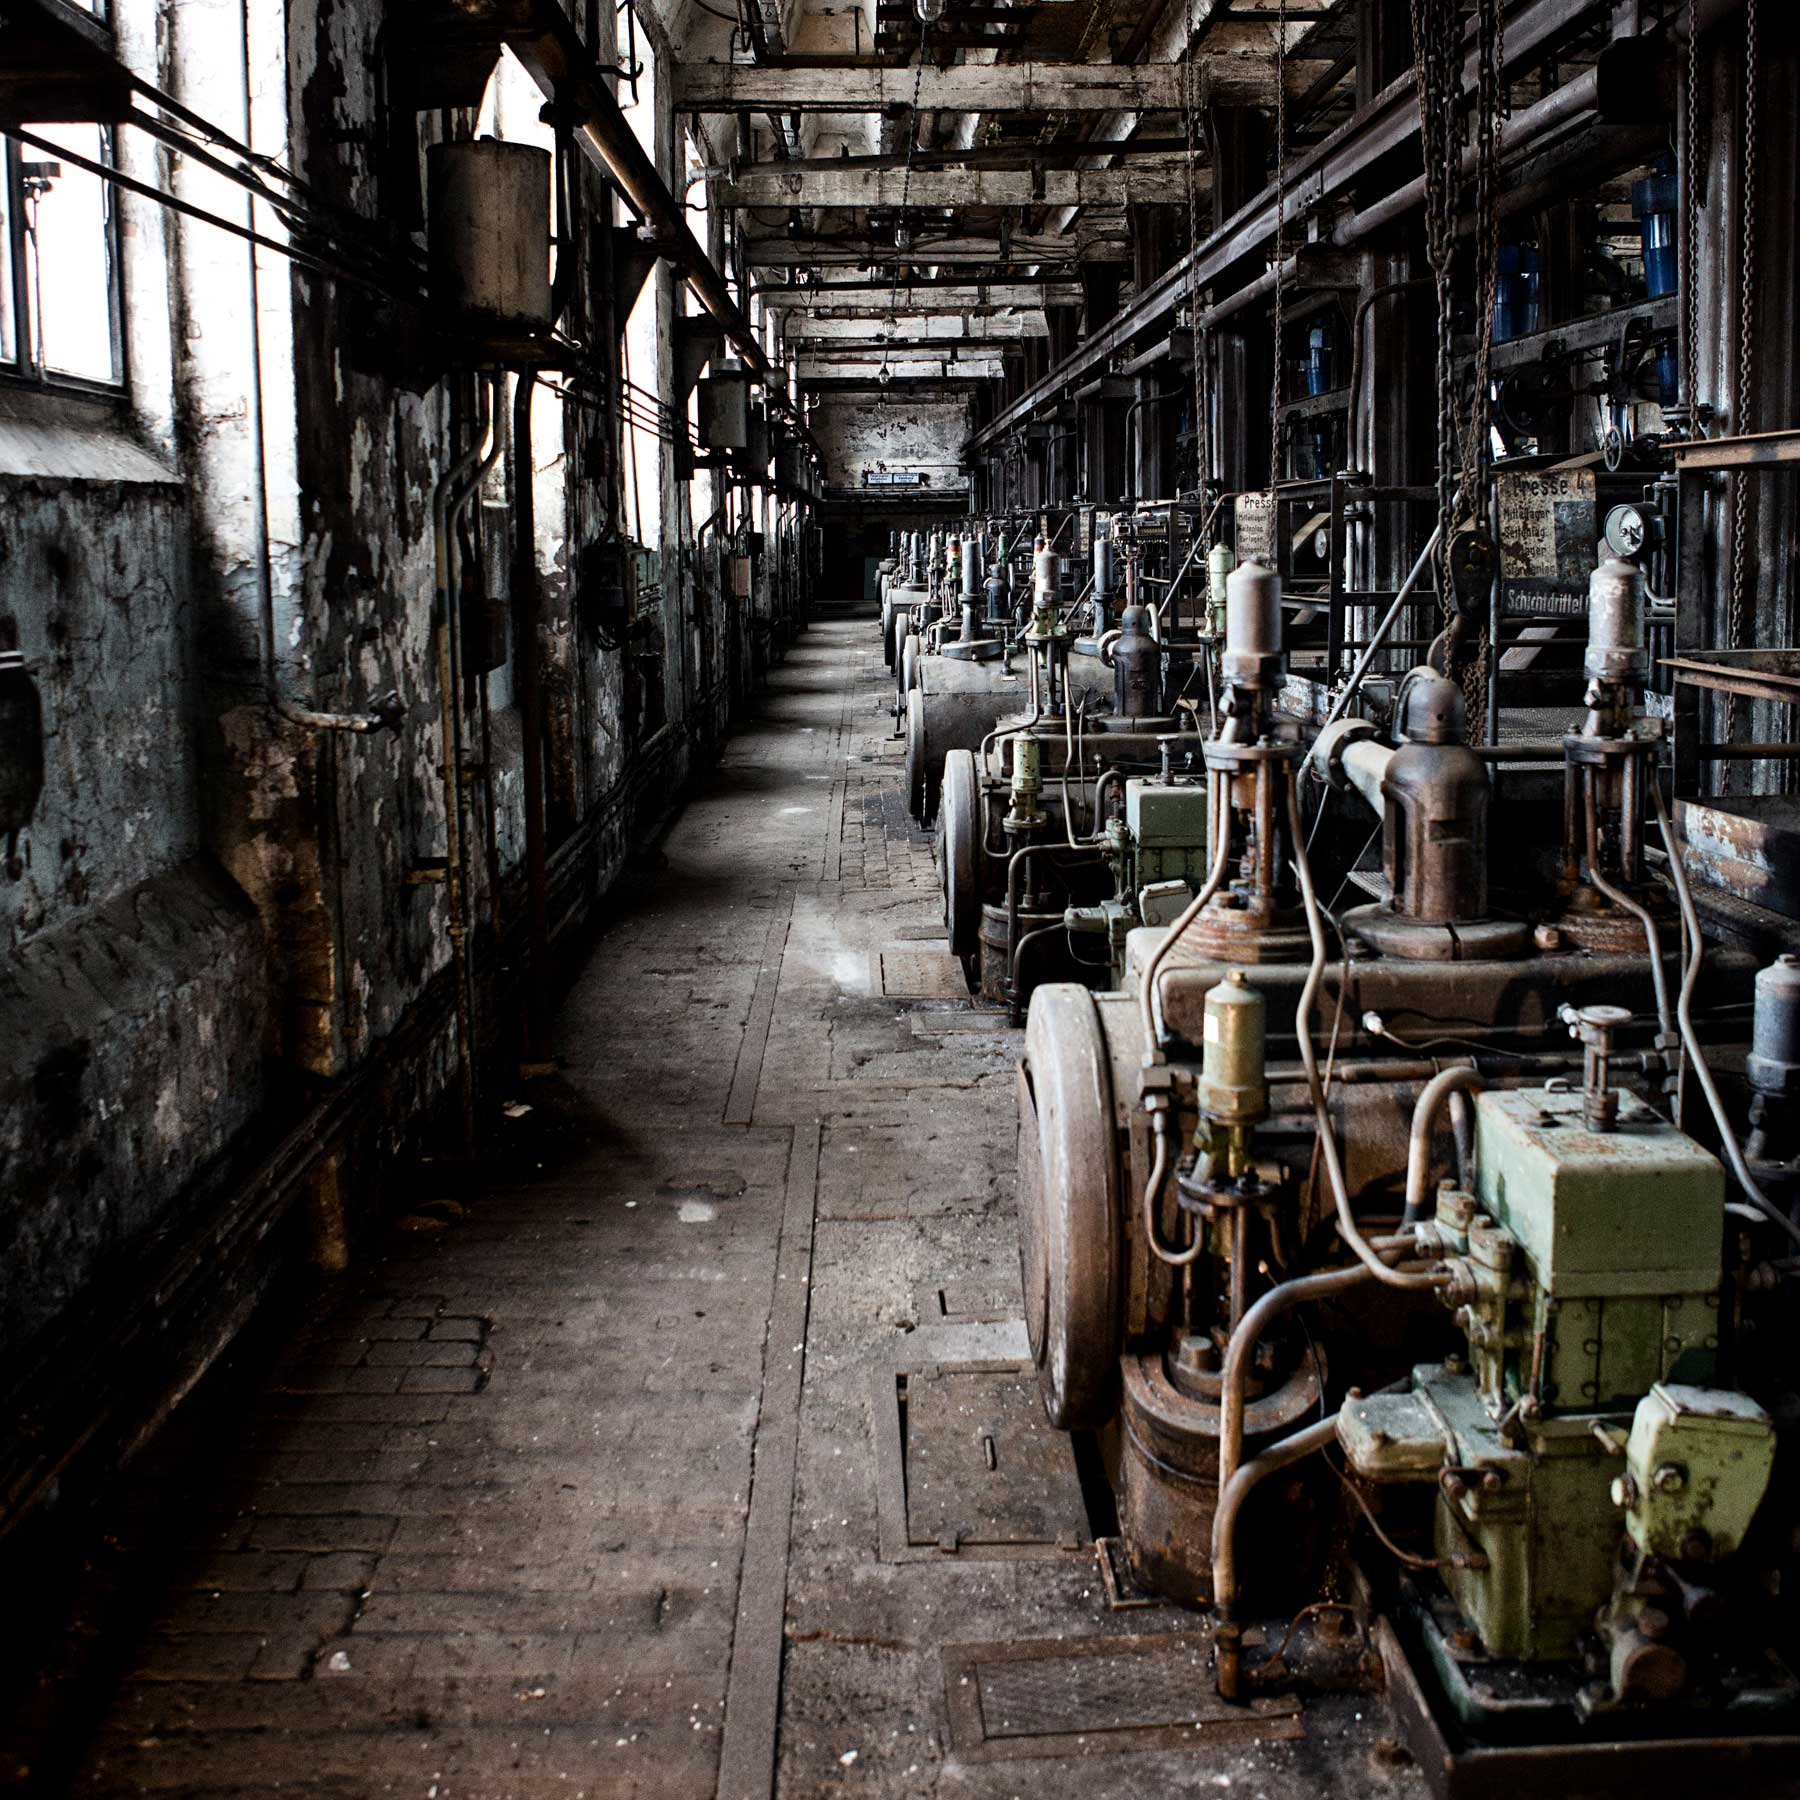 Inside of the old brown coal factory.